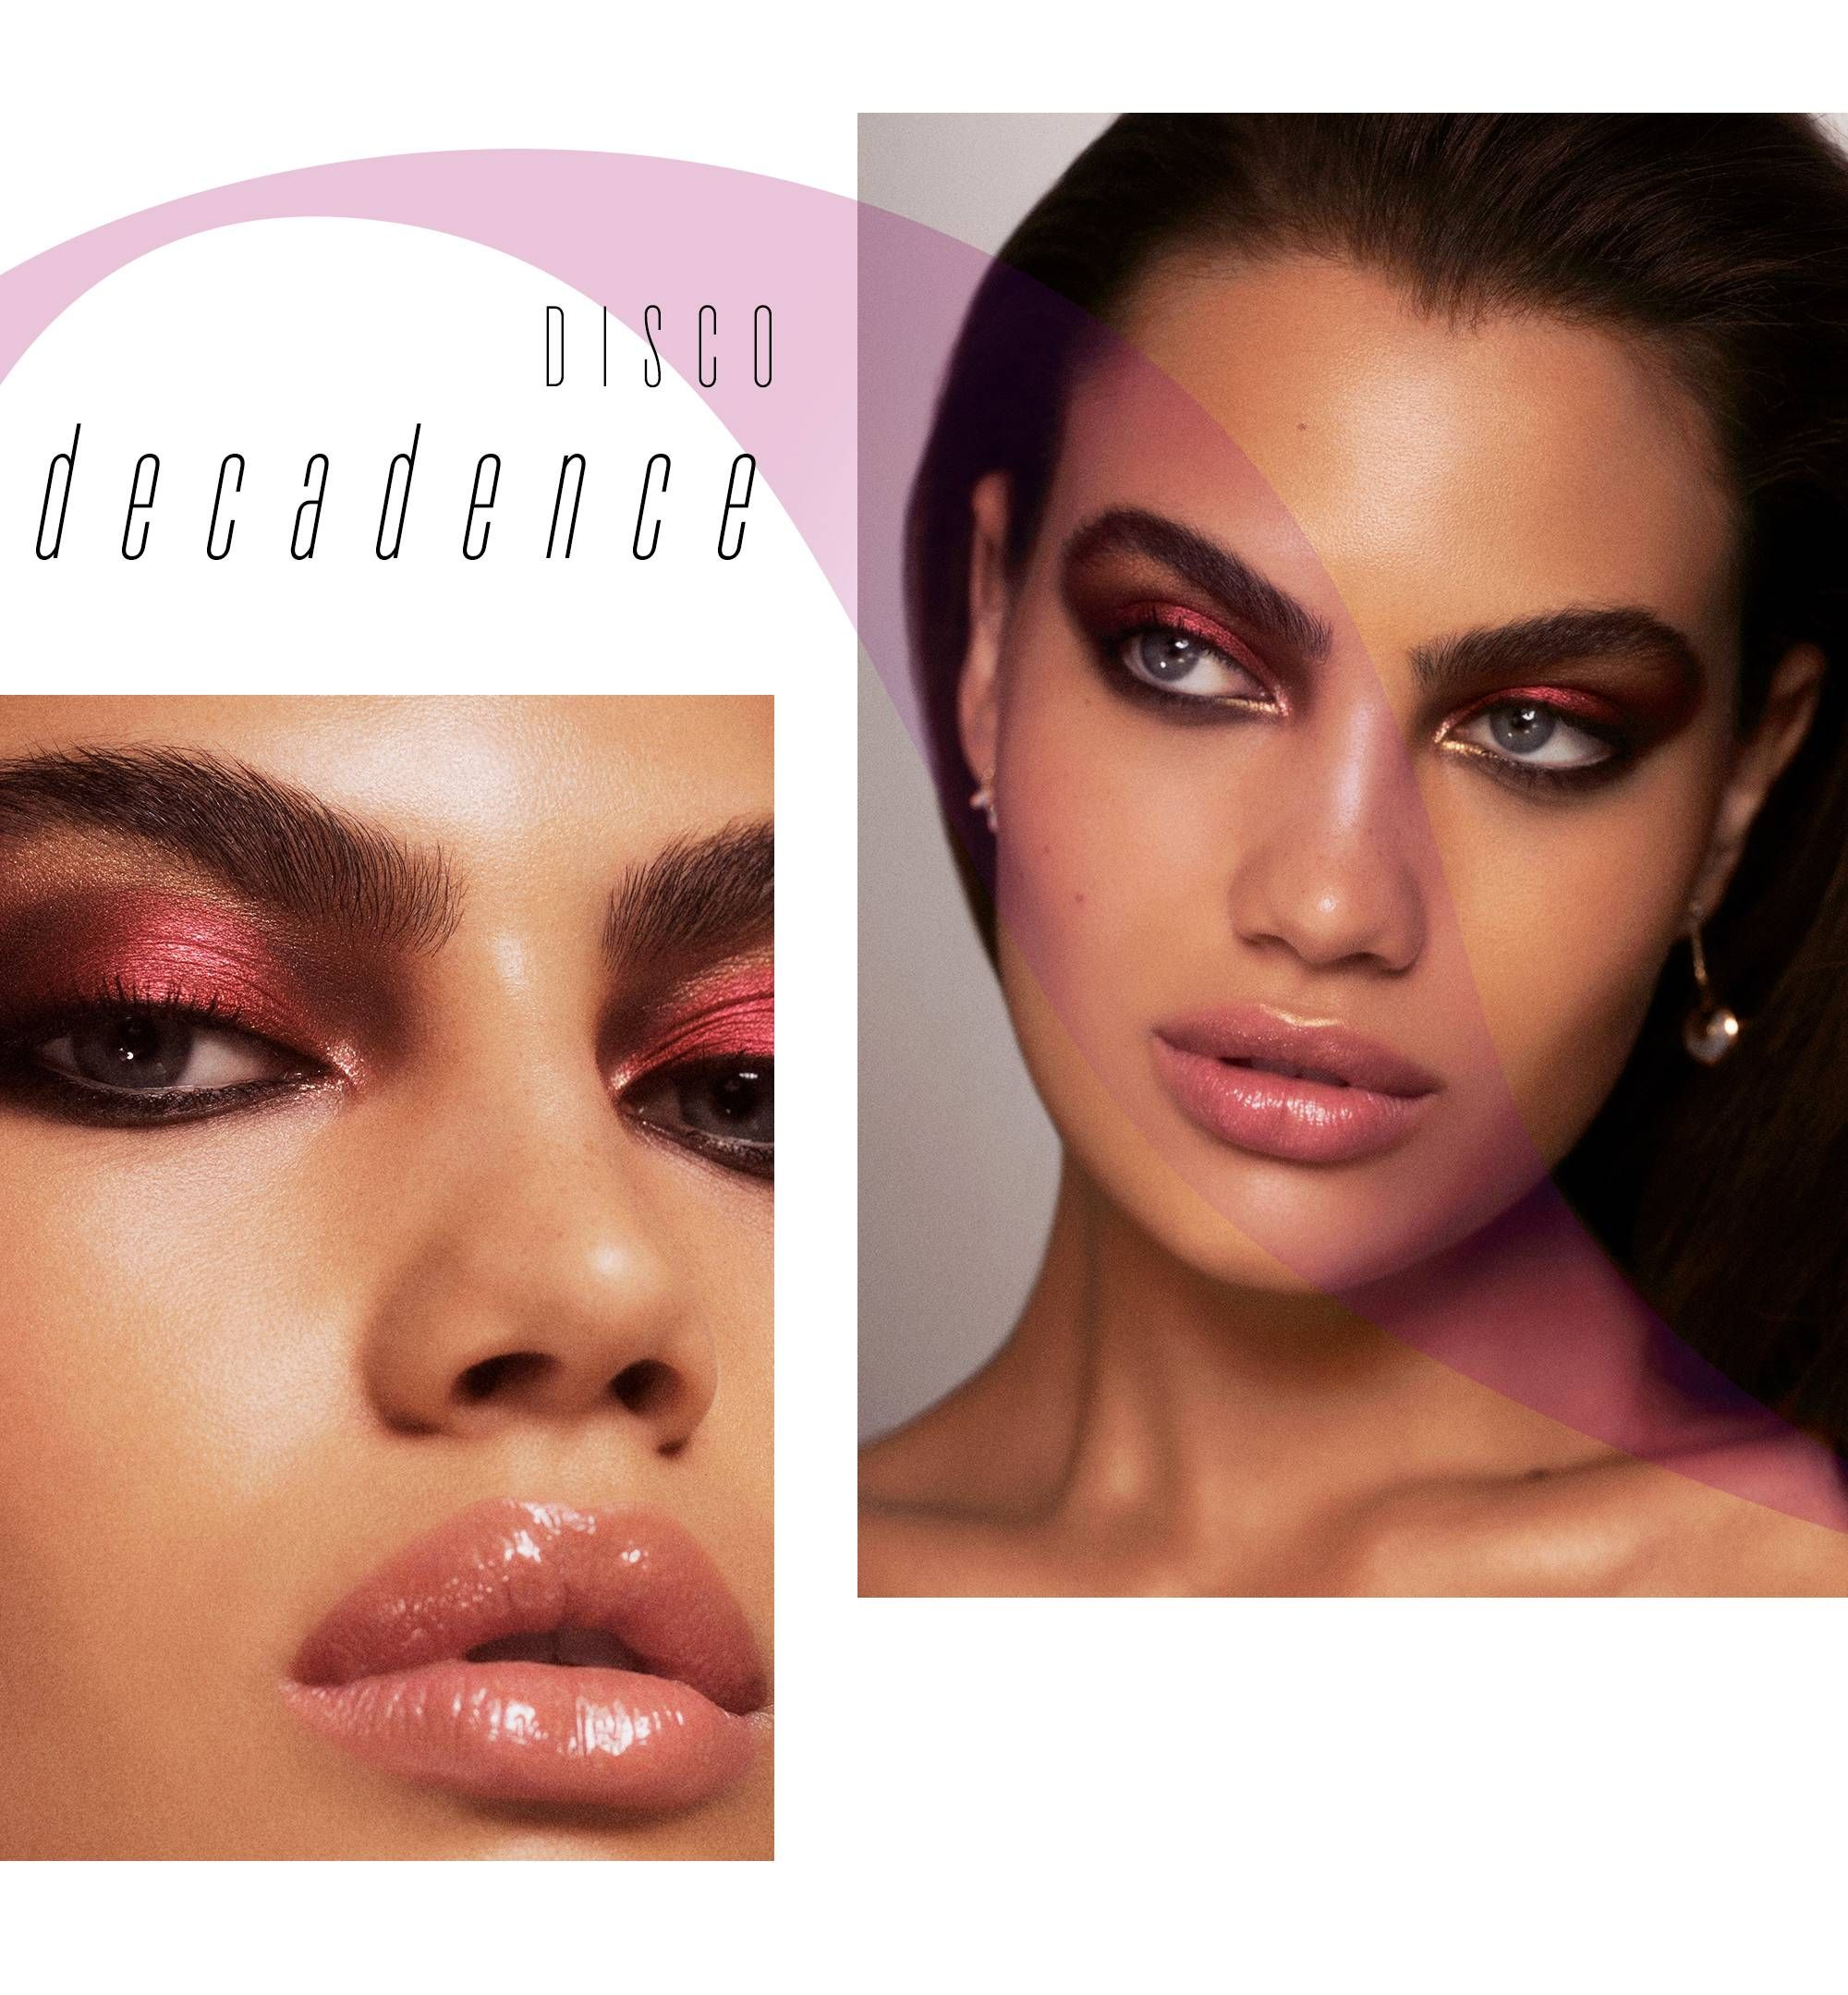 3 Intergalactic Fall Makeup Looks With the Legendary Pat McGrath